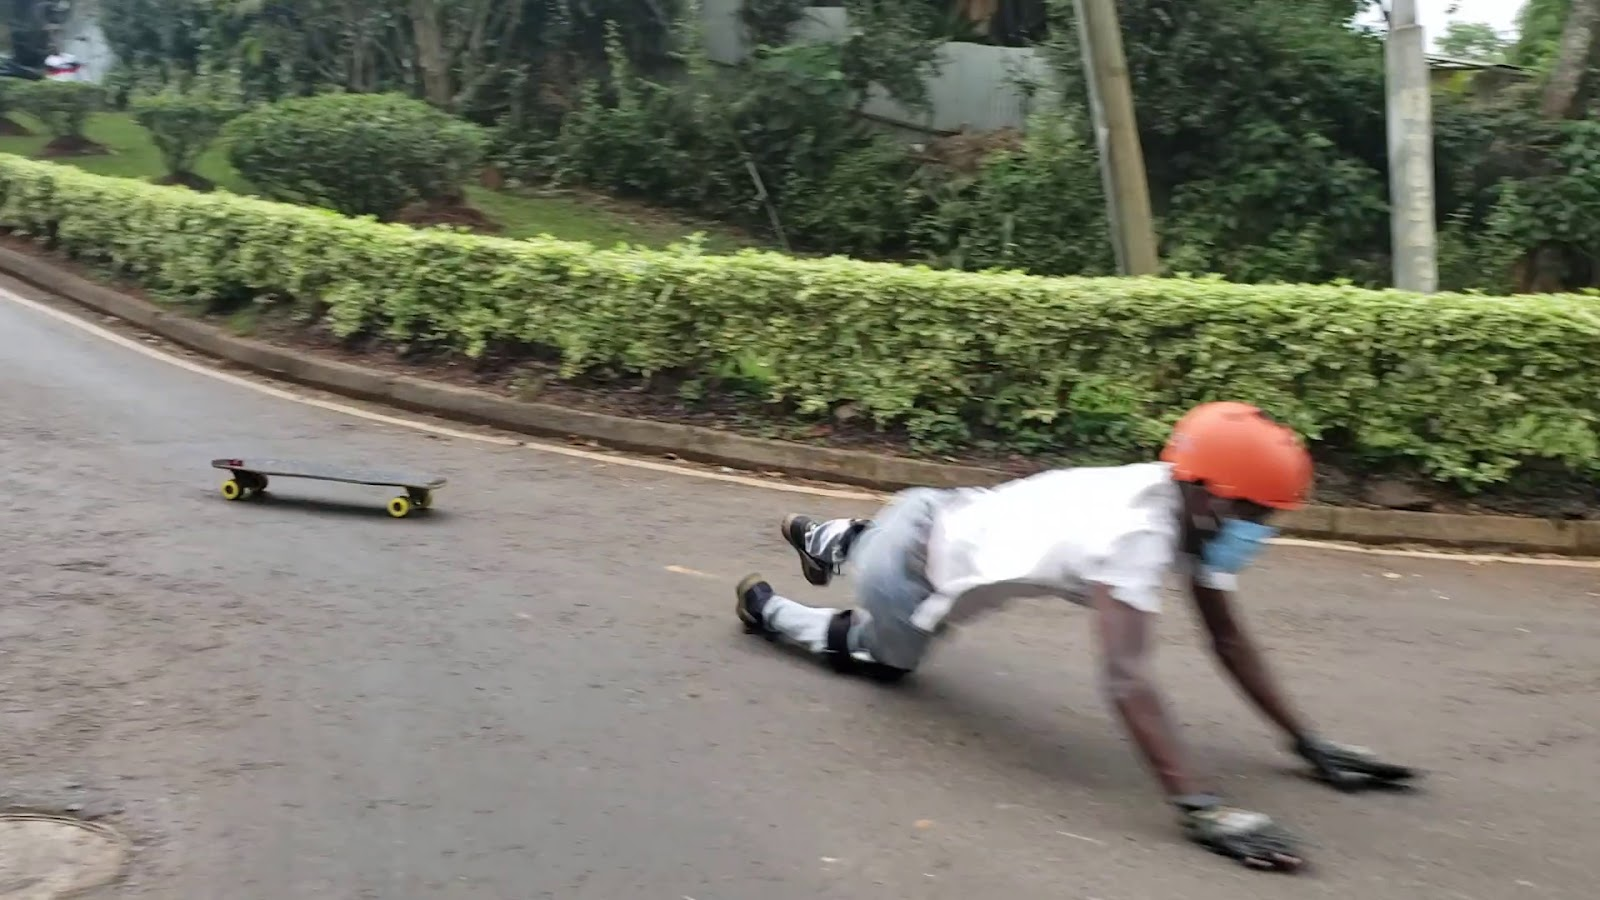 how to fall properly downhill skateboarding